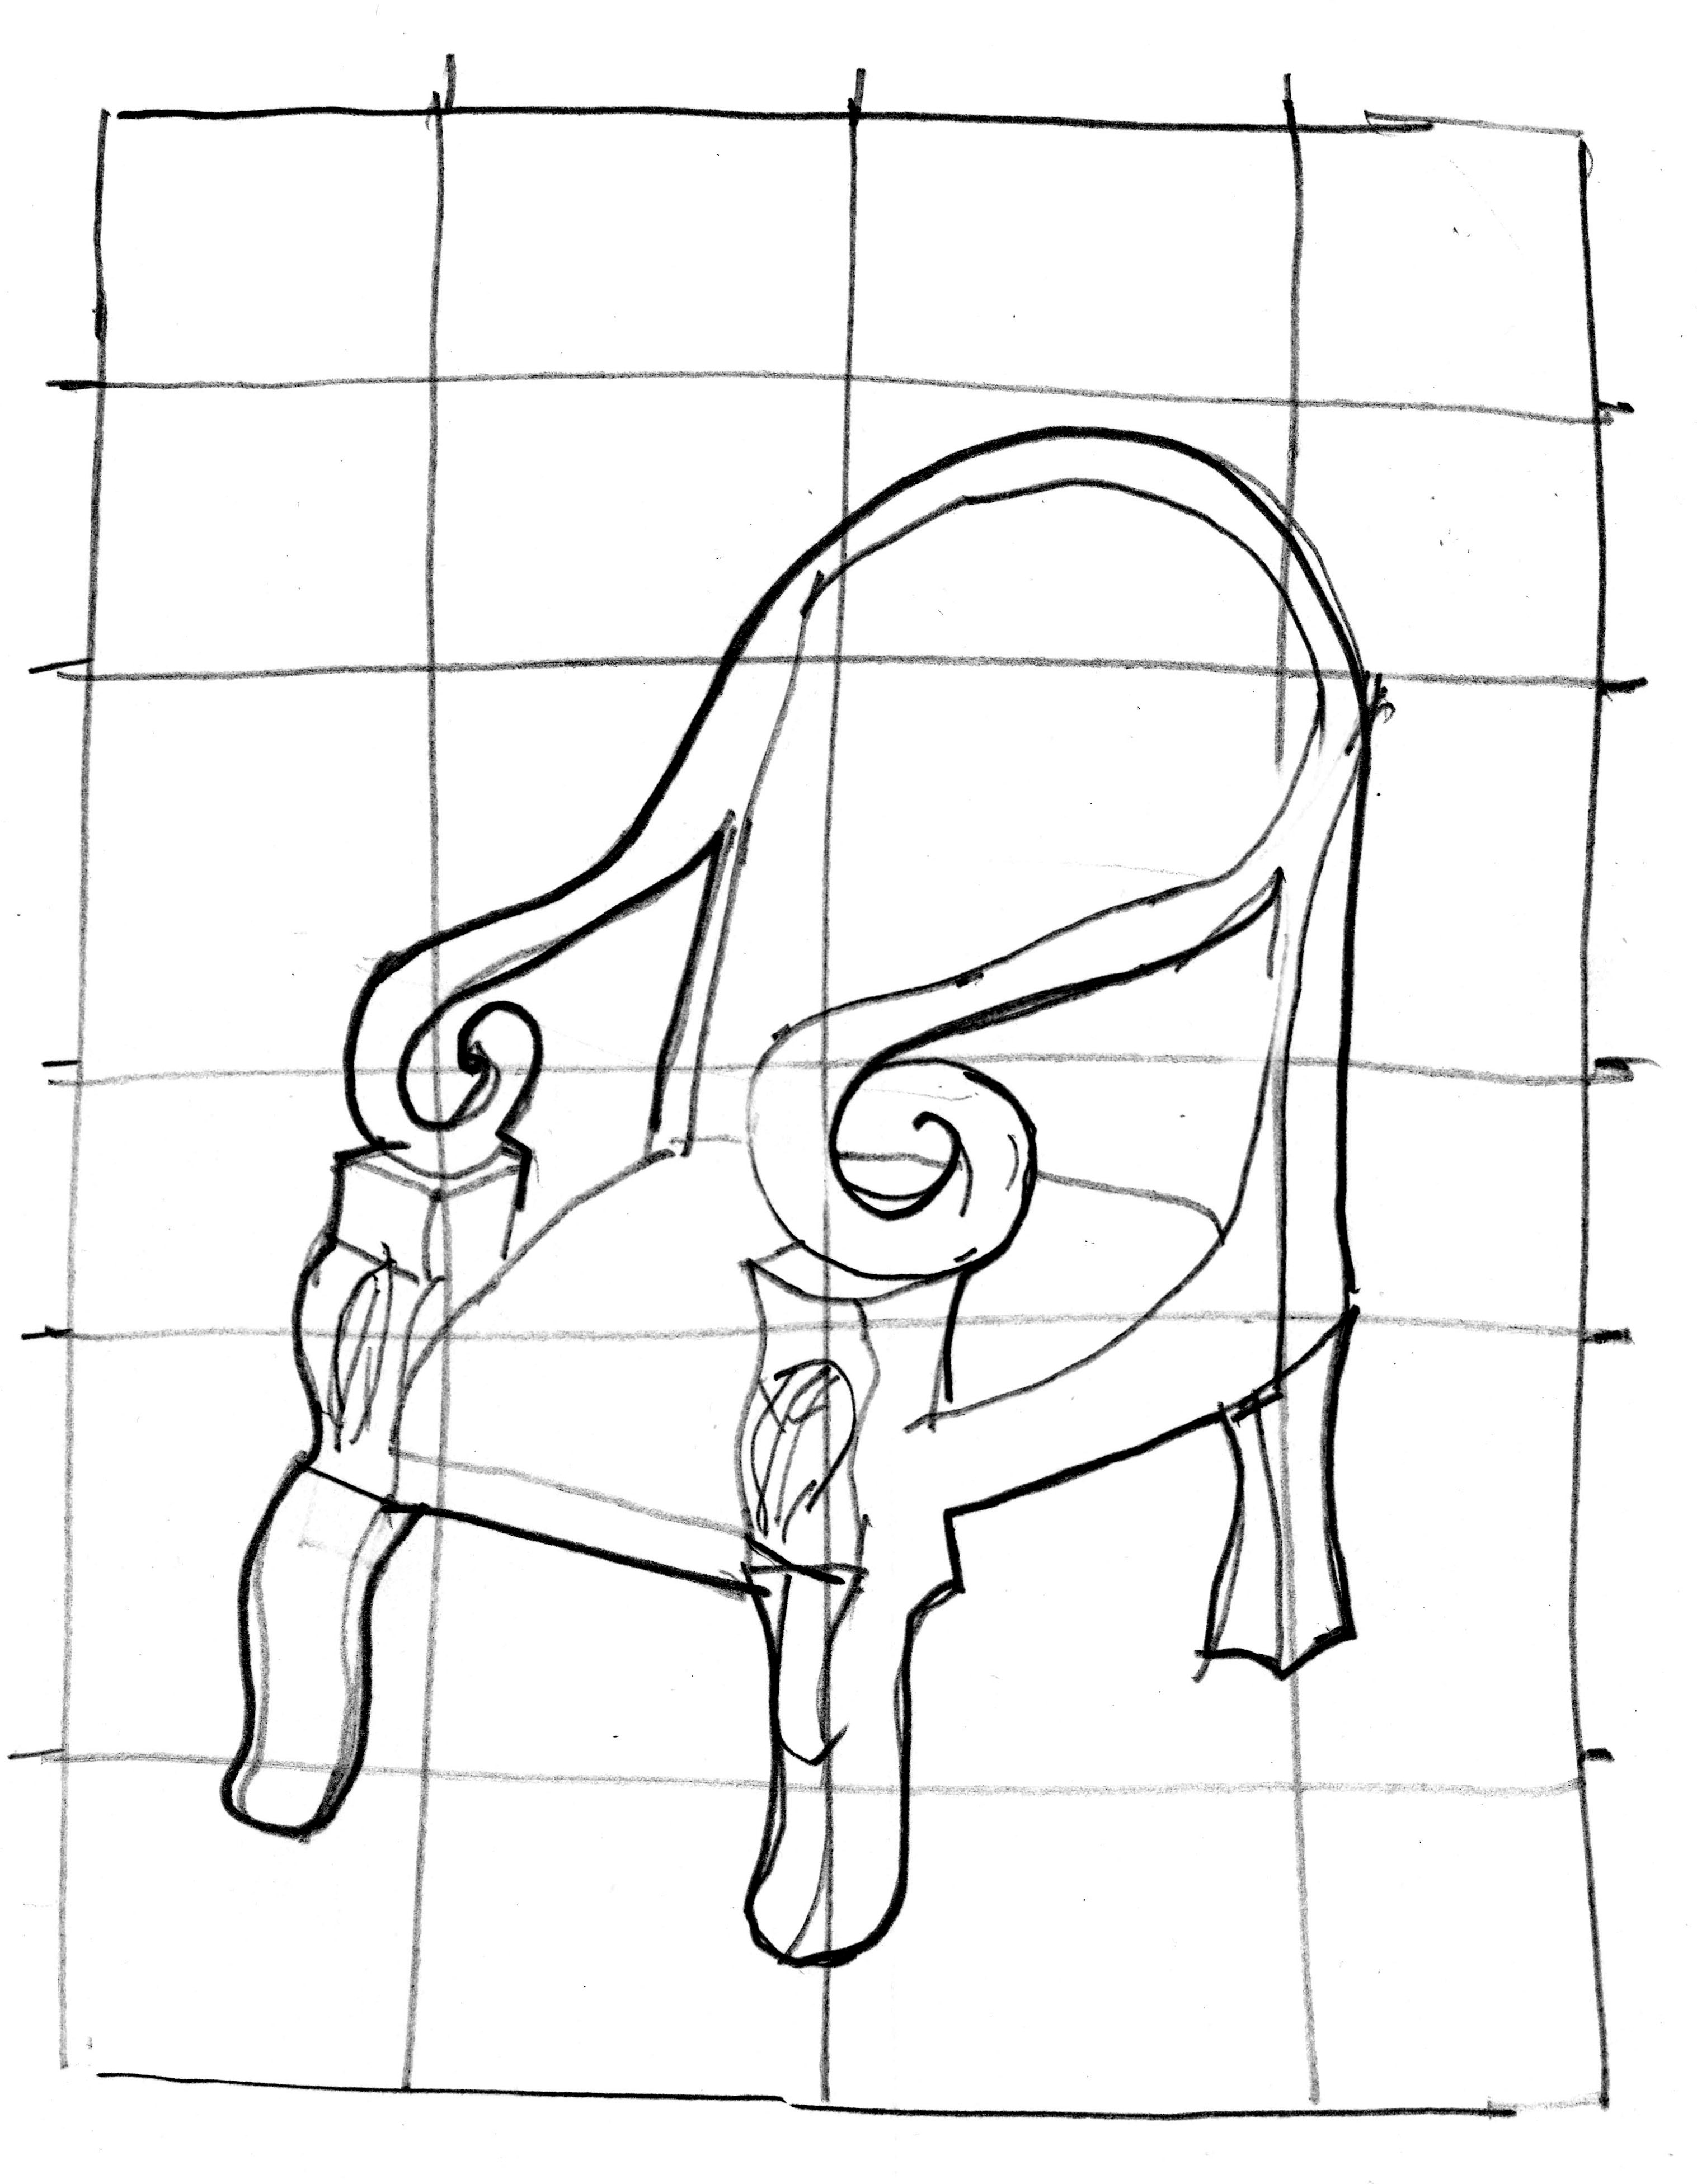 Drawn chair elevation Demonstration Hand Drawing Page I